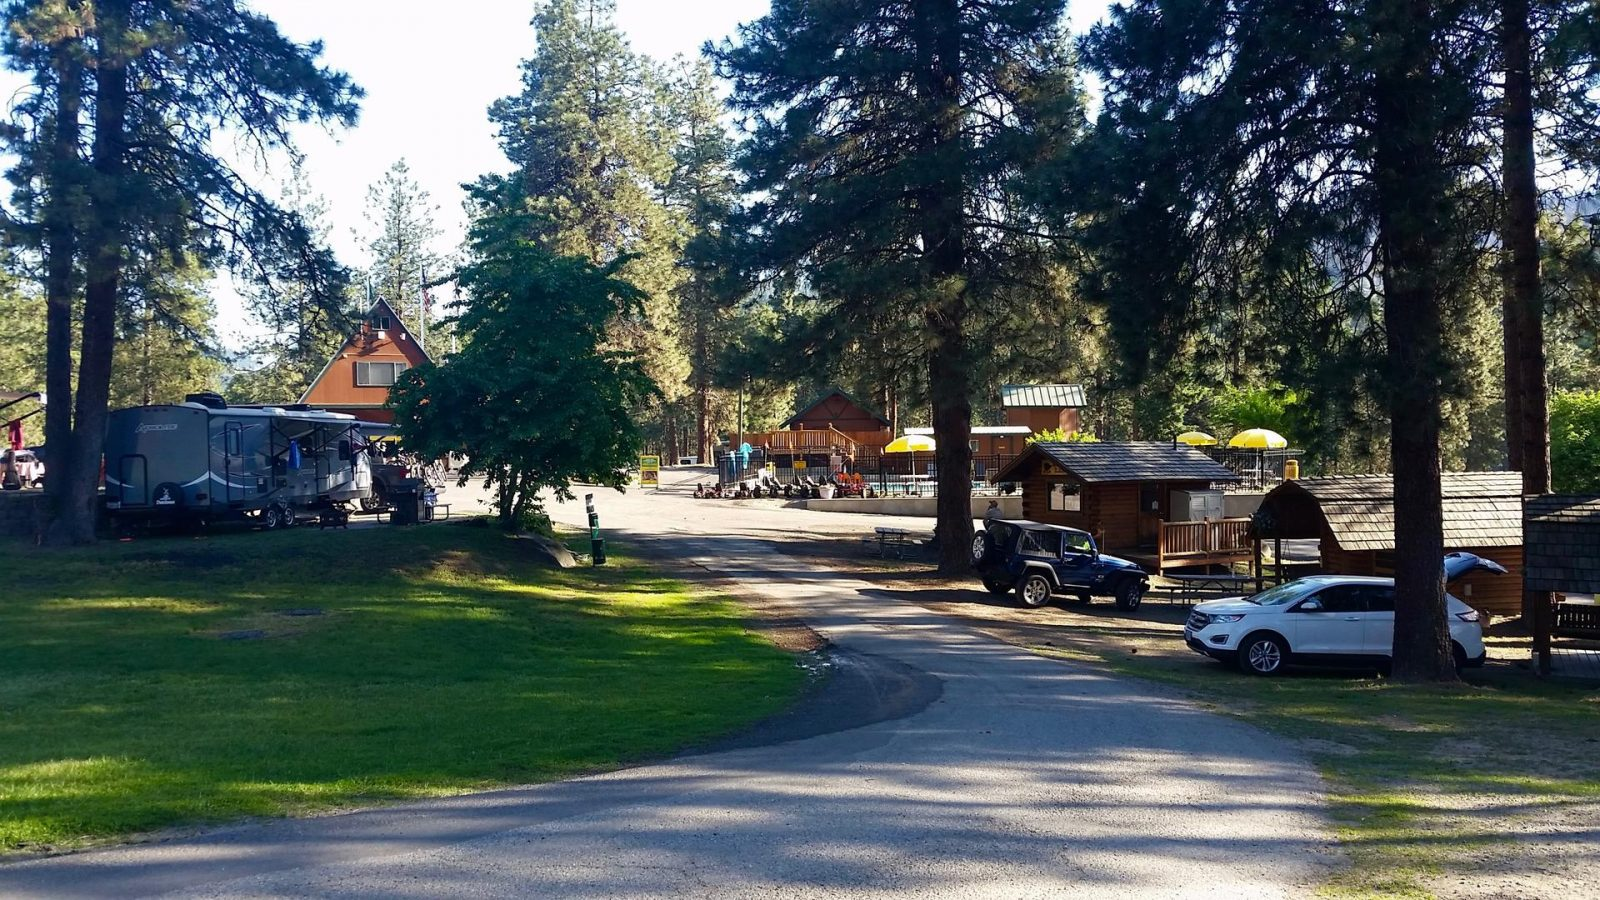 Village Pines Campground